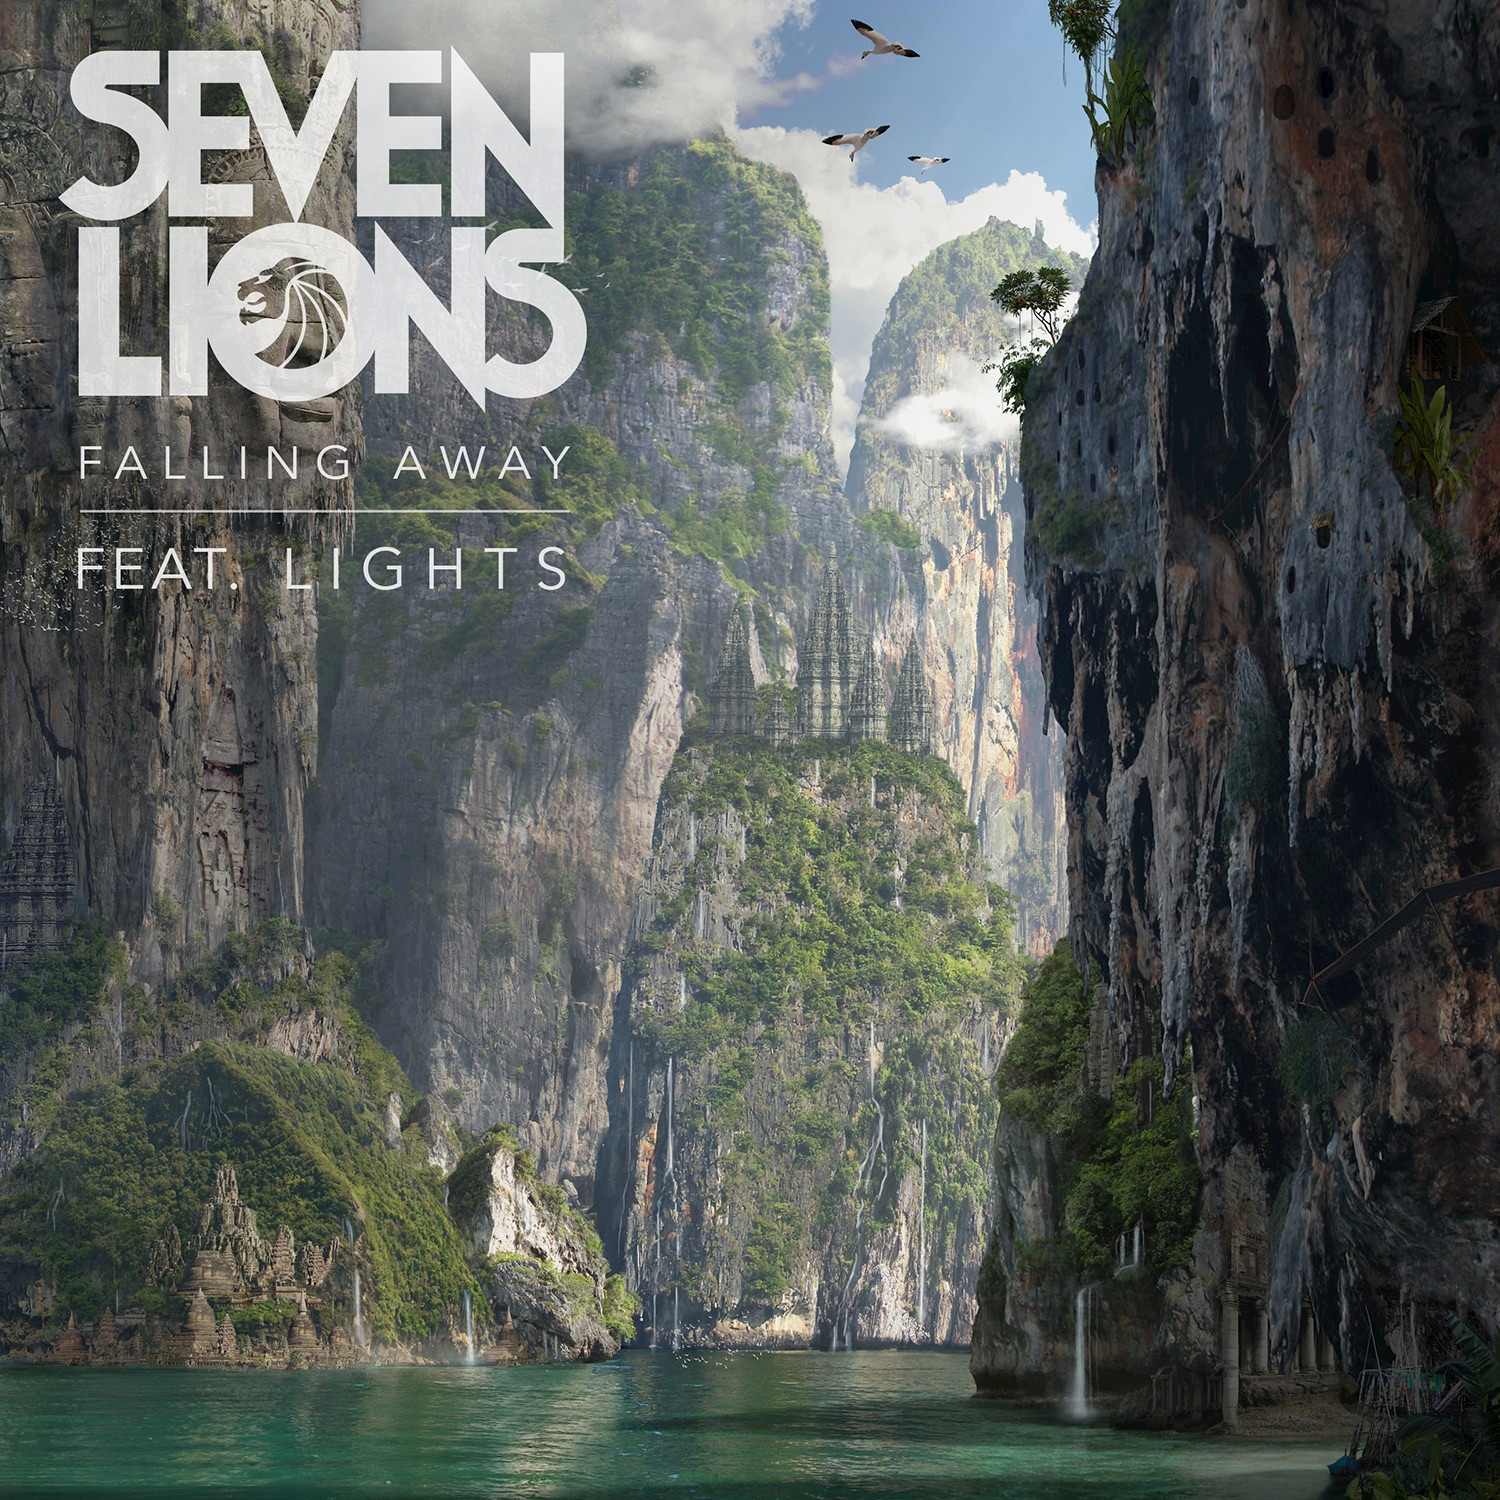 Fall In Love With Me Wallpaper Falling Away Feat Lights Single By Seven Lions On Itunes